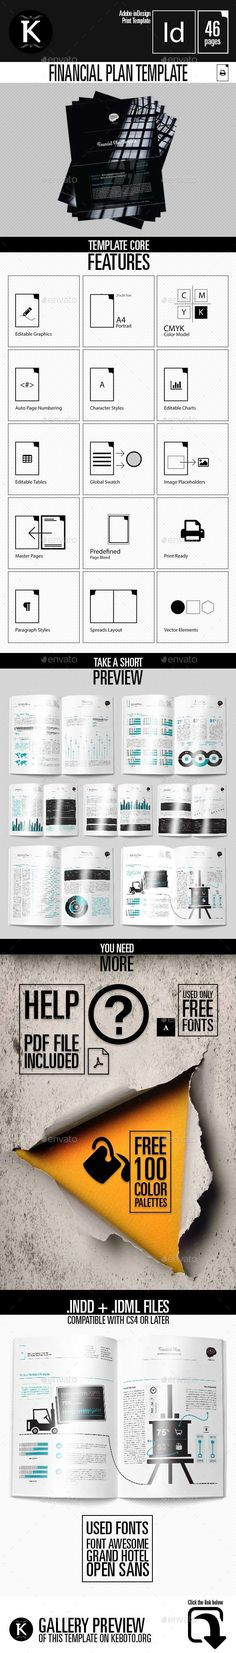 10 best Financial Plan Template   By ex Deloitte Consultants images     Financial Plan Template     InDesign INDD  business financial  indesign      Available here        https